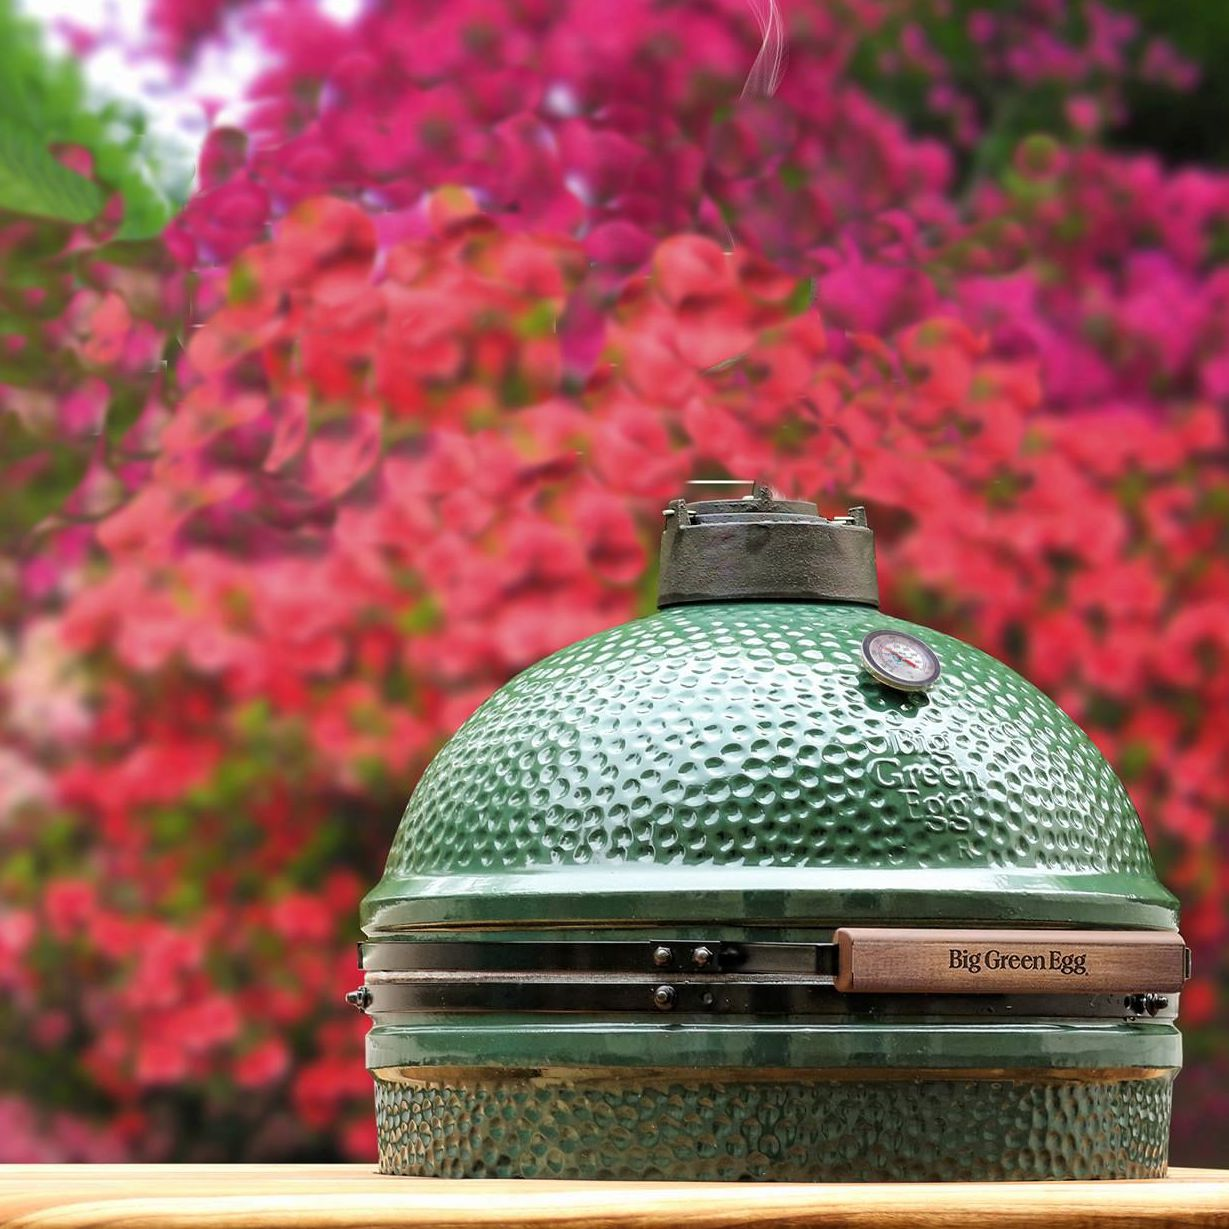 Big GreenEgg